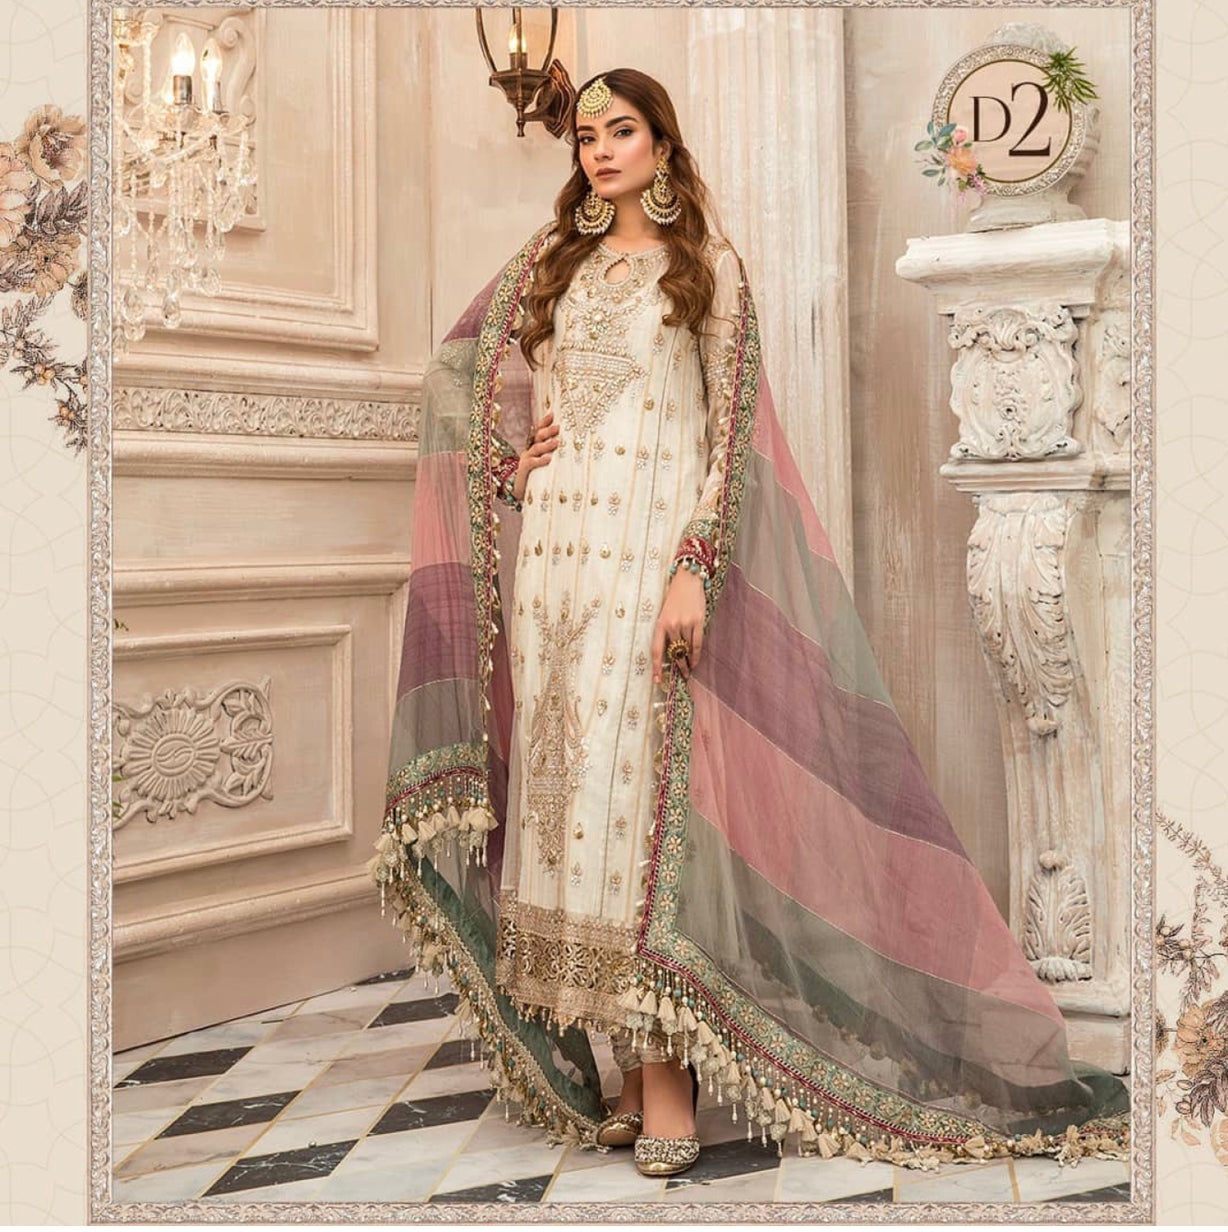 Maria B Eid embroidered 2020 Hit design D2 white pink suit